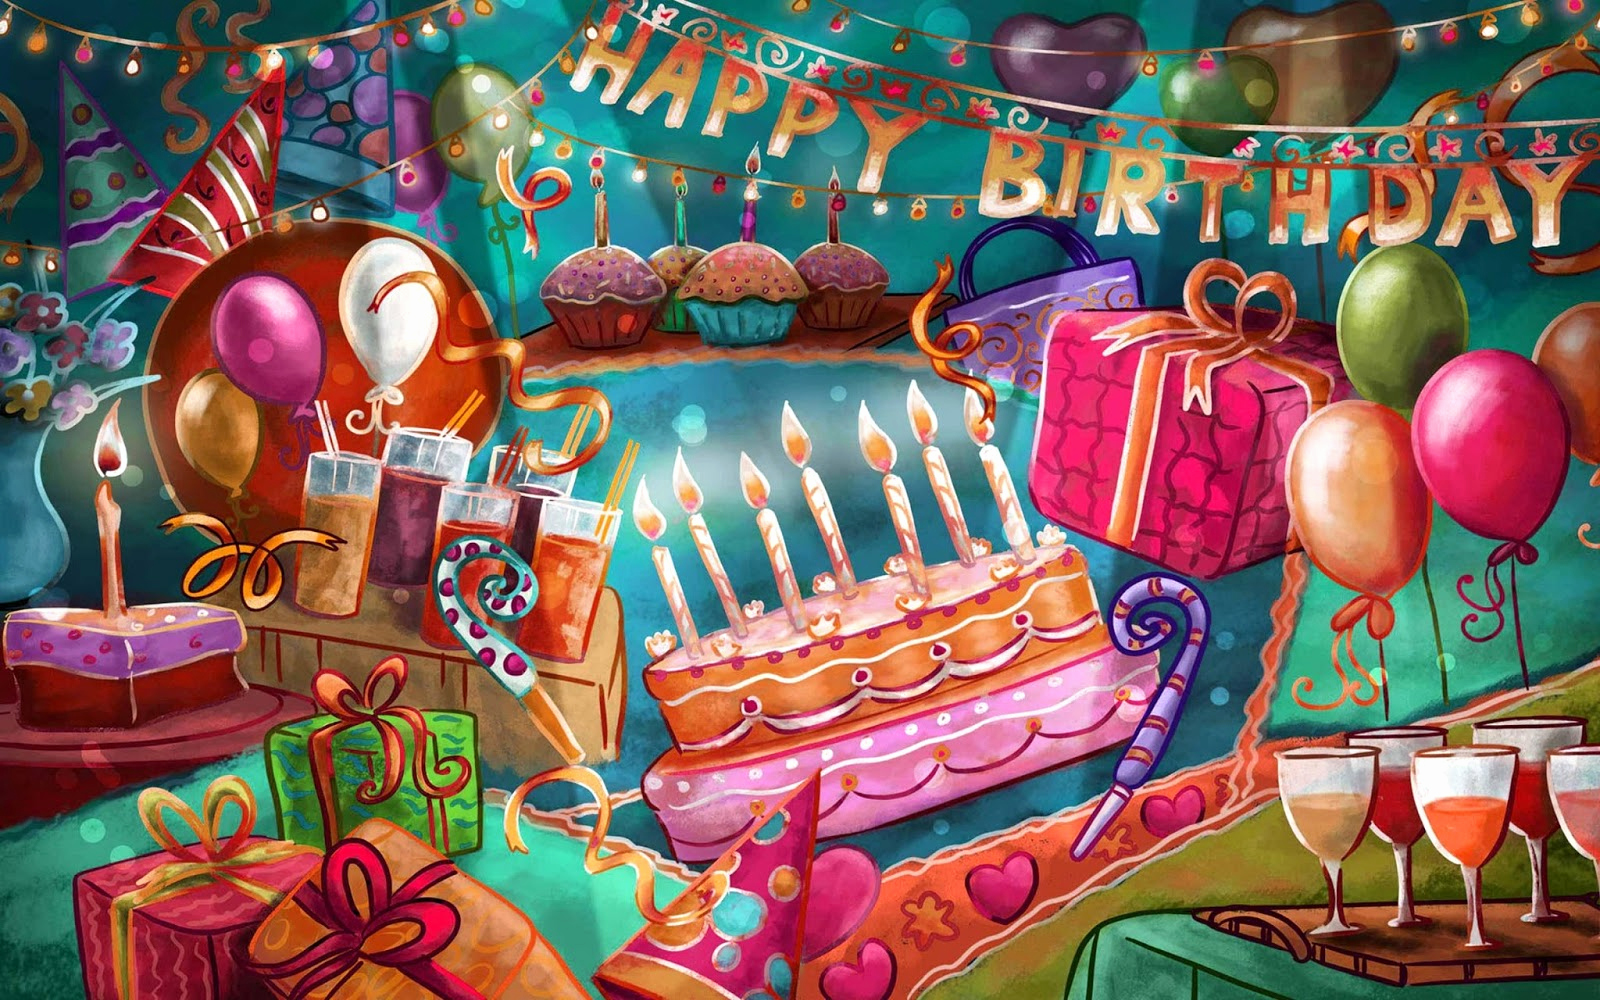 Happy Bday Wallpapers Free Unique Happy Birthday Greetings Wishes High Resolution Hd 2013